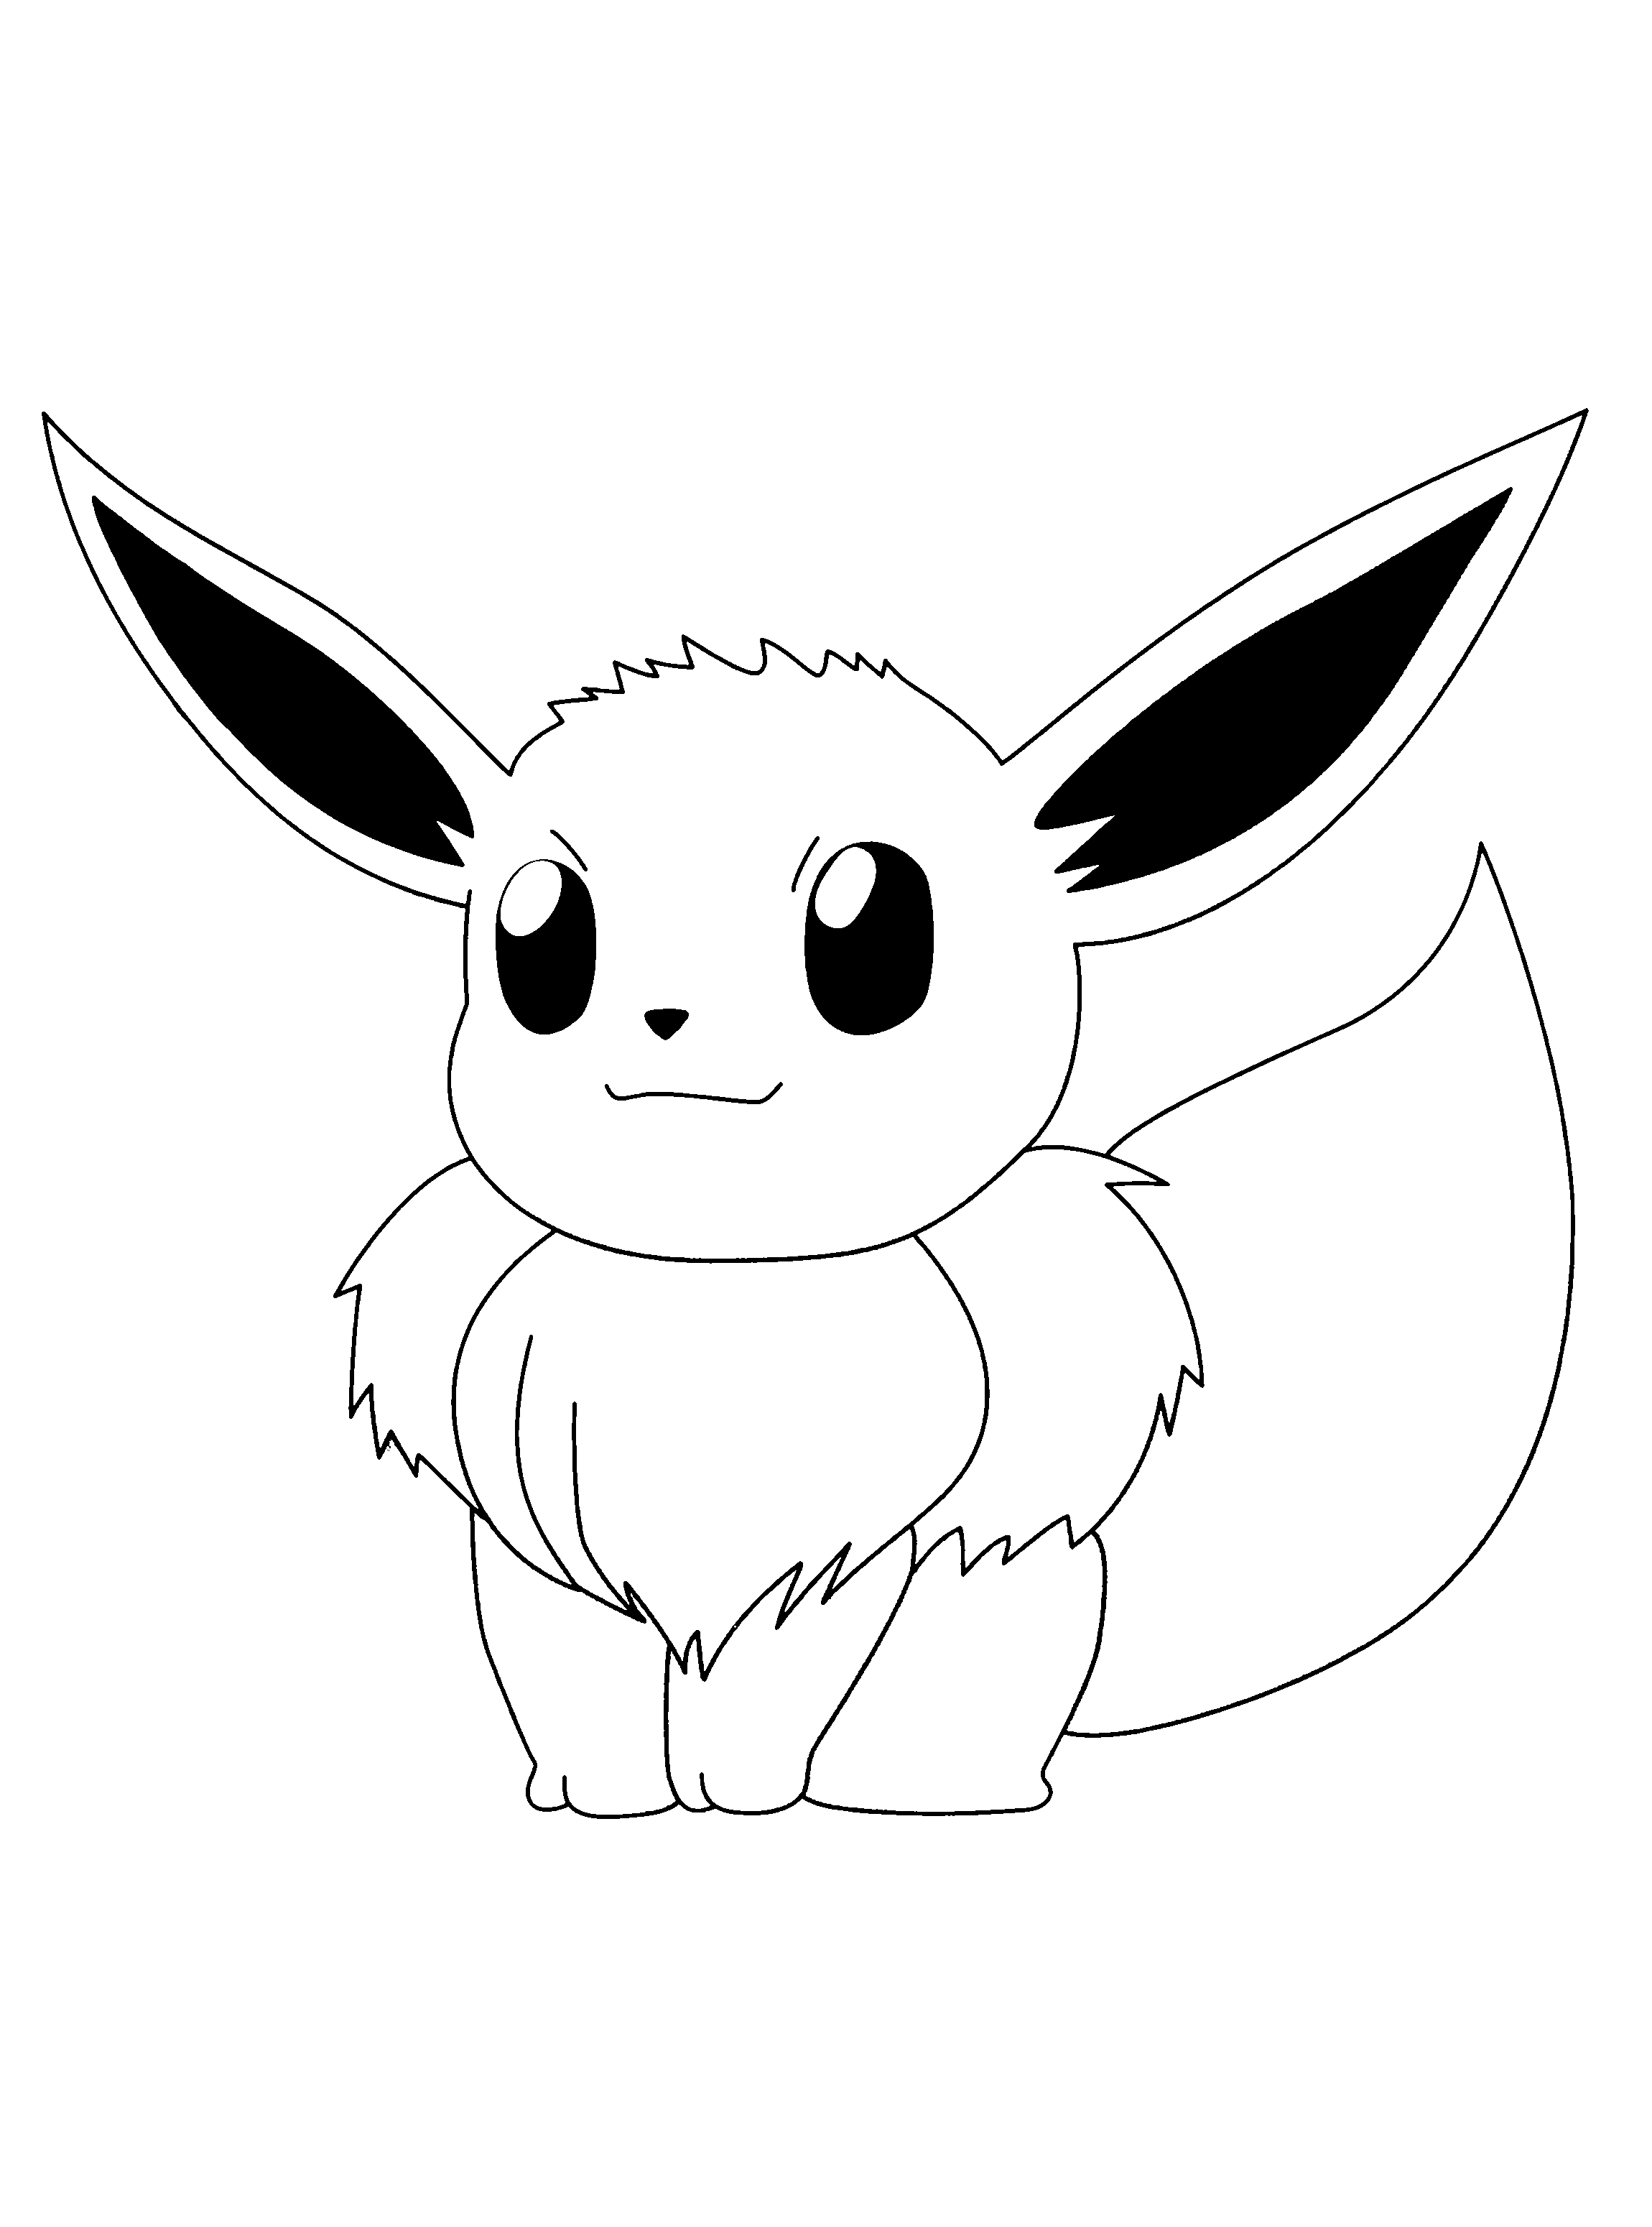 Pokemon Coloring Pages | dibujos | Pinterest | Colorear, Fotos de ...